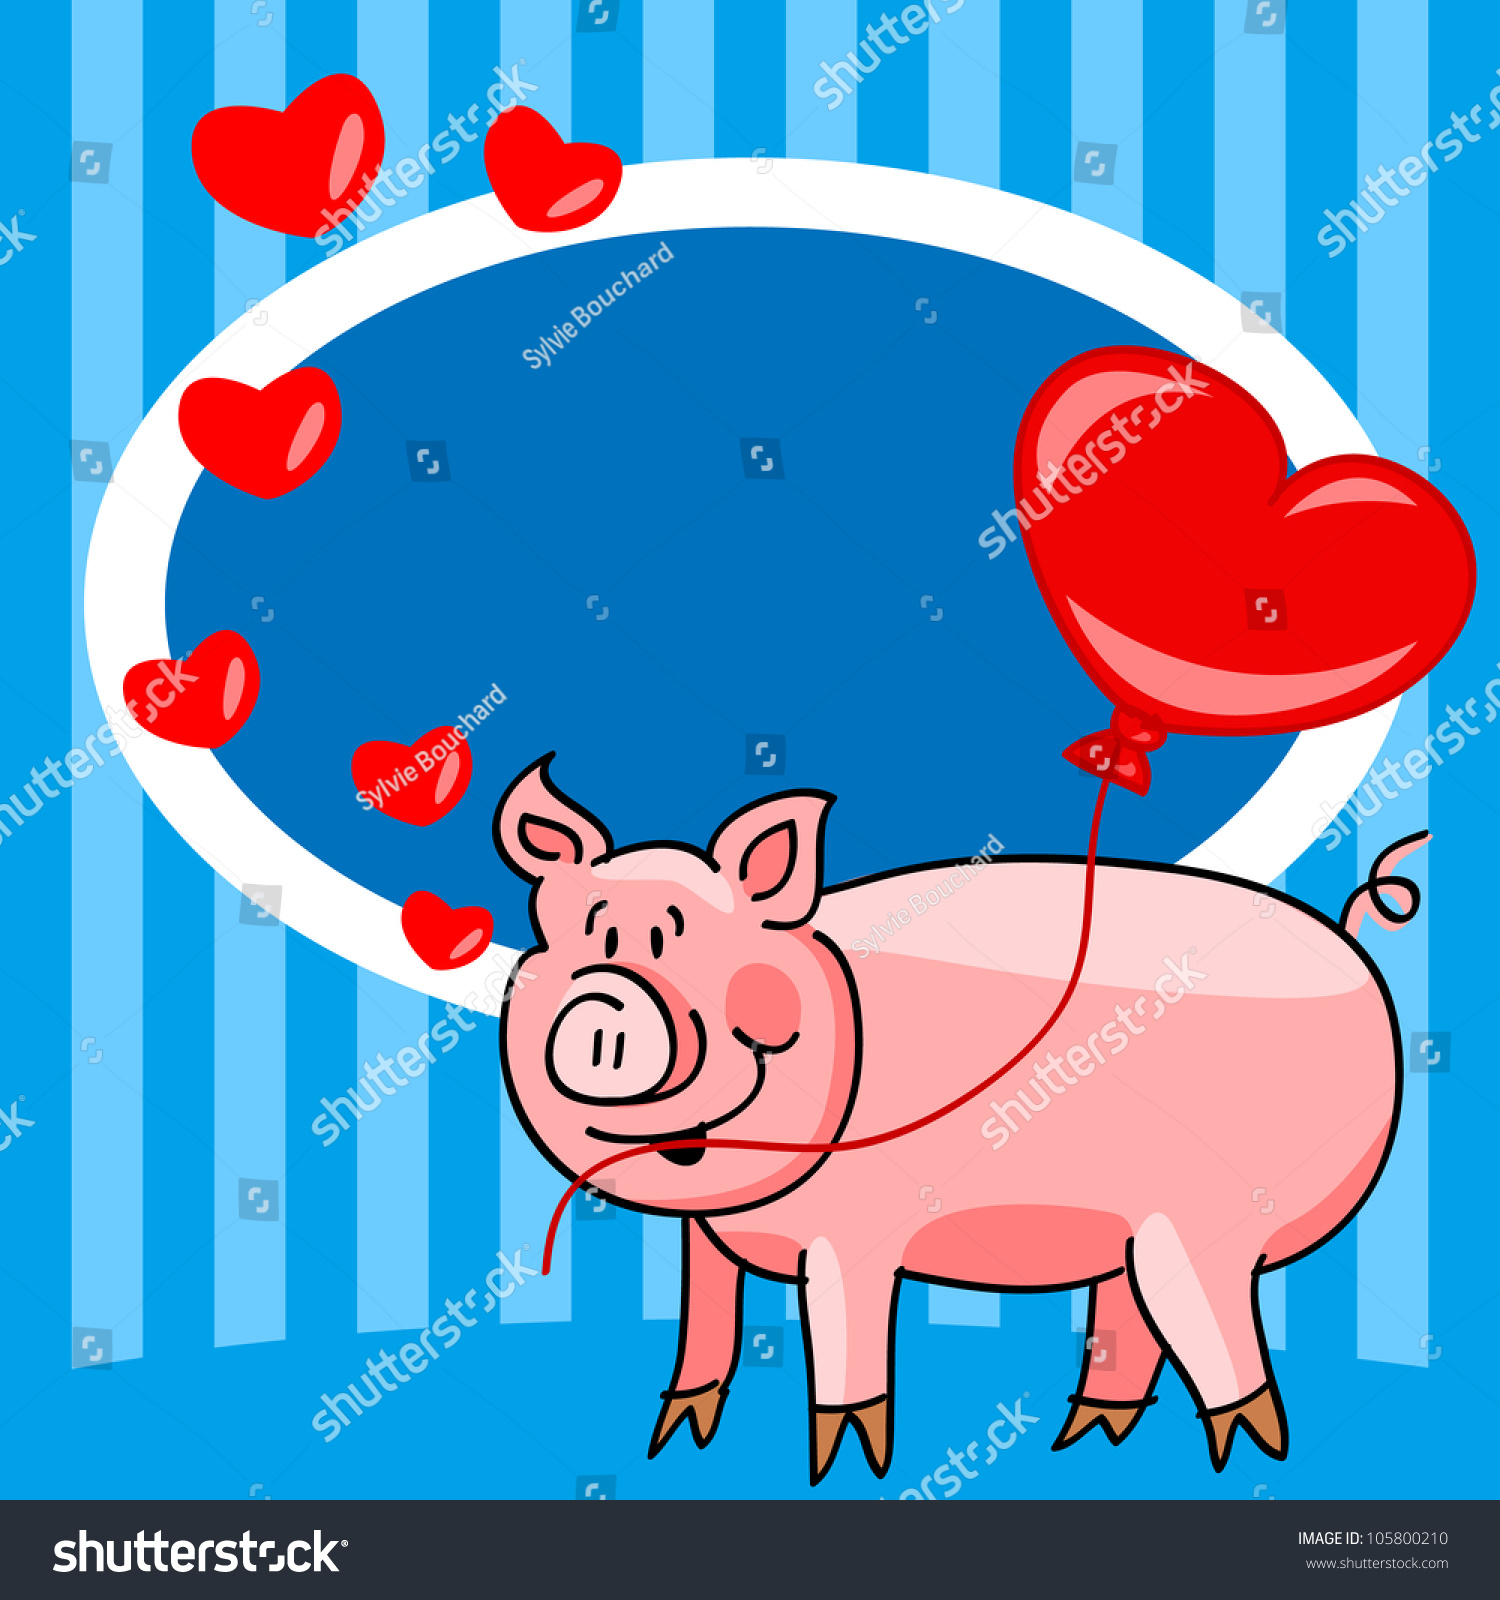 Cute And Fun Hand Drawn Cartoon Pig Holding A Heart Balloon With Room For Your Text